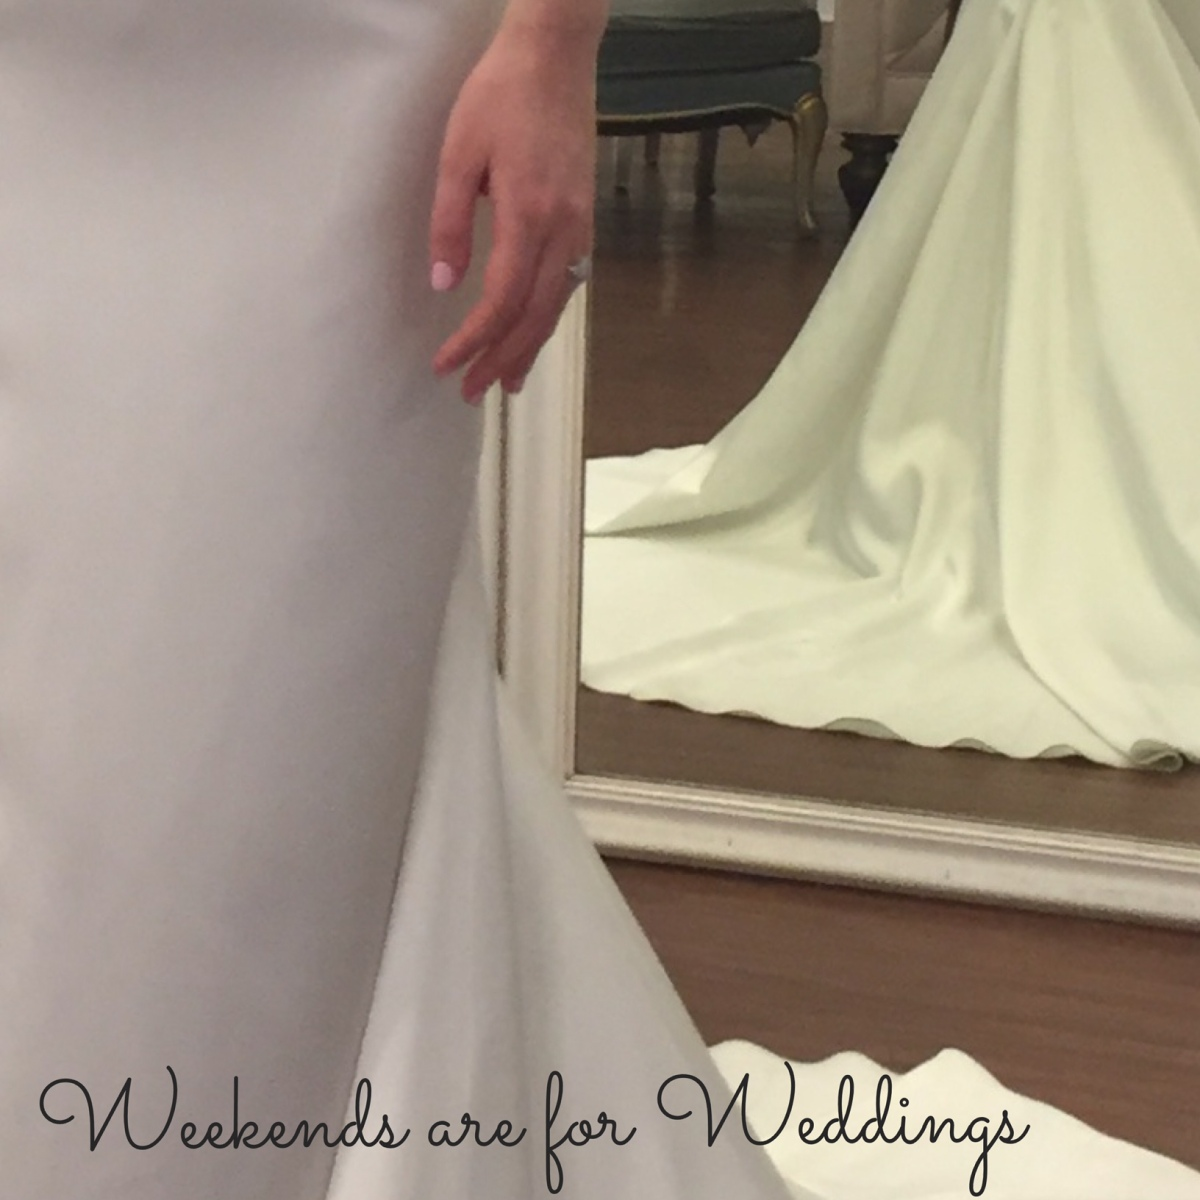 Weekends are for Weddings: A Great Wedding Gift Idea